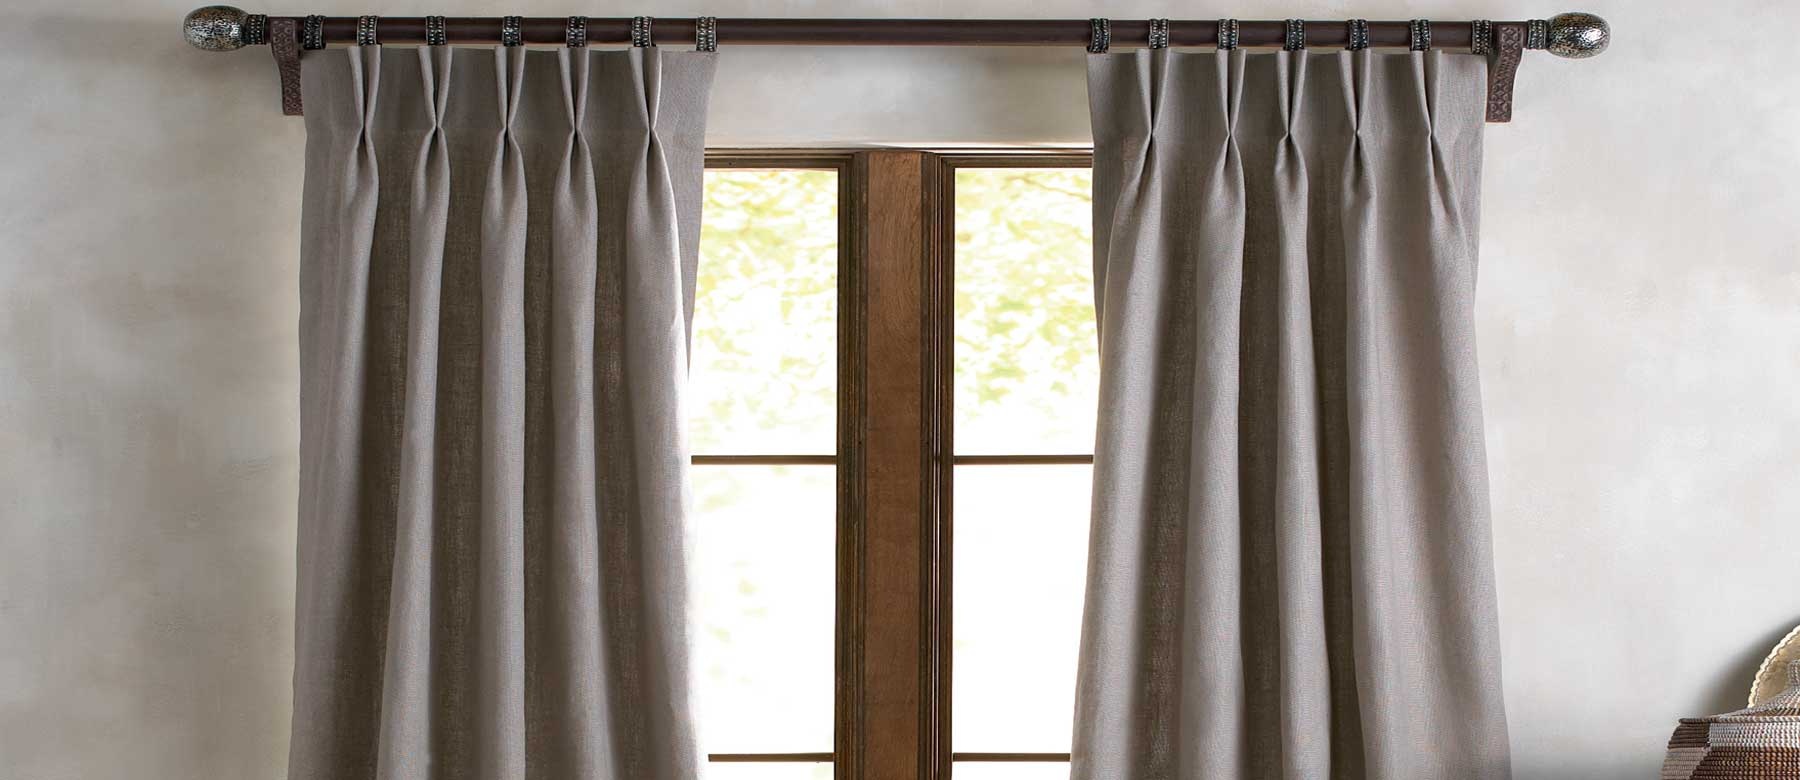 Drapery Hardware & Window Treatments